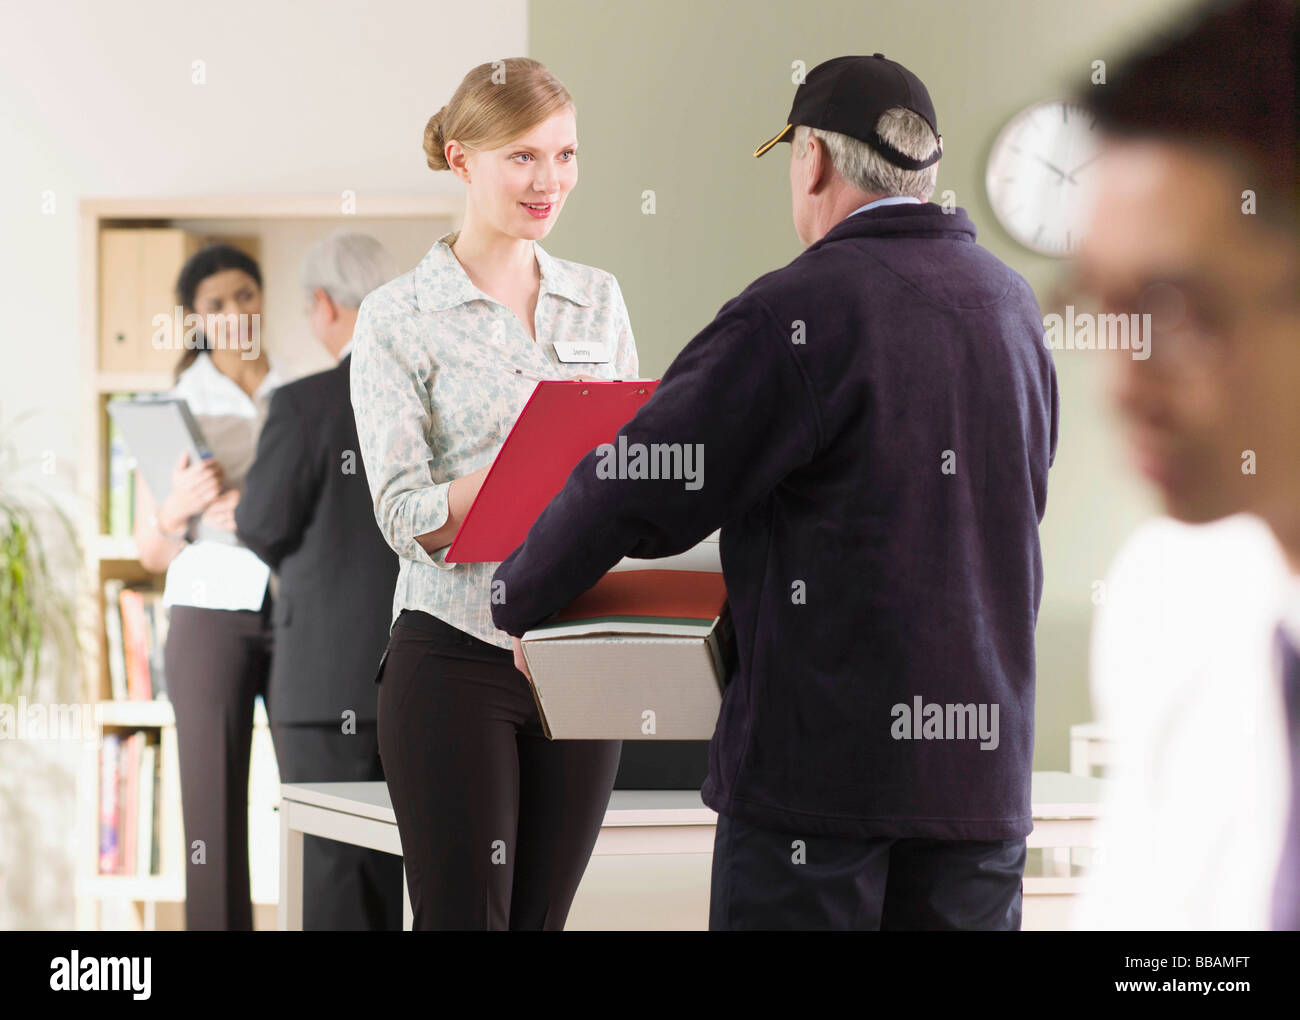 A delivery arrives at an office - Stock Image